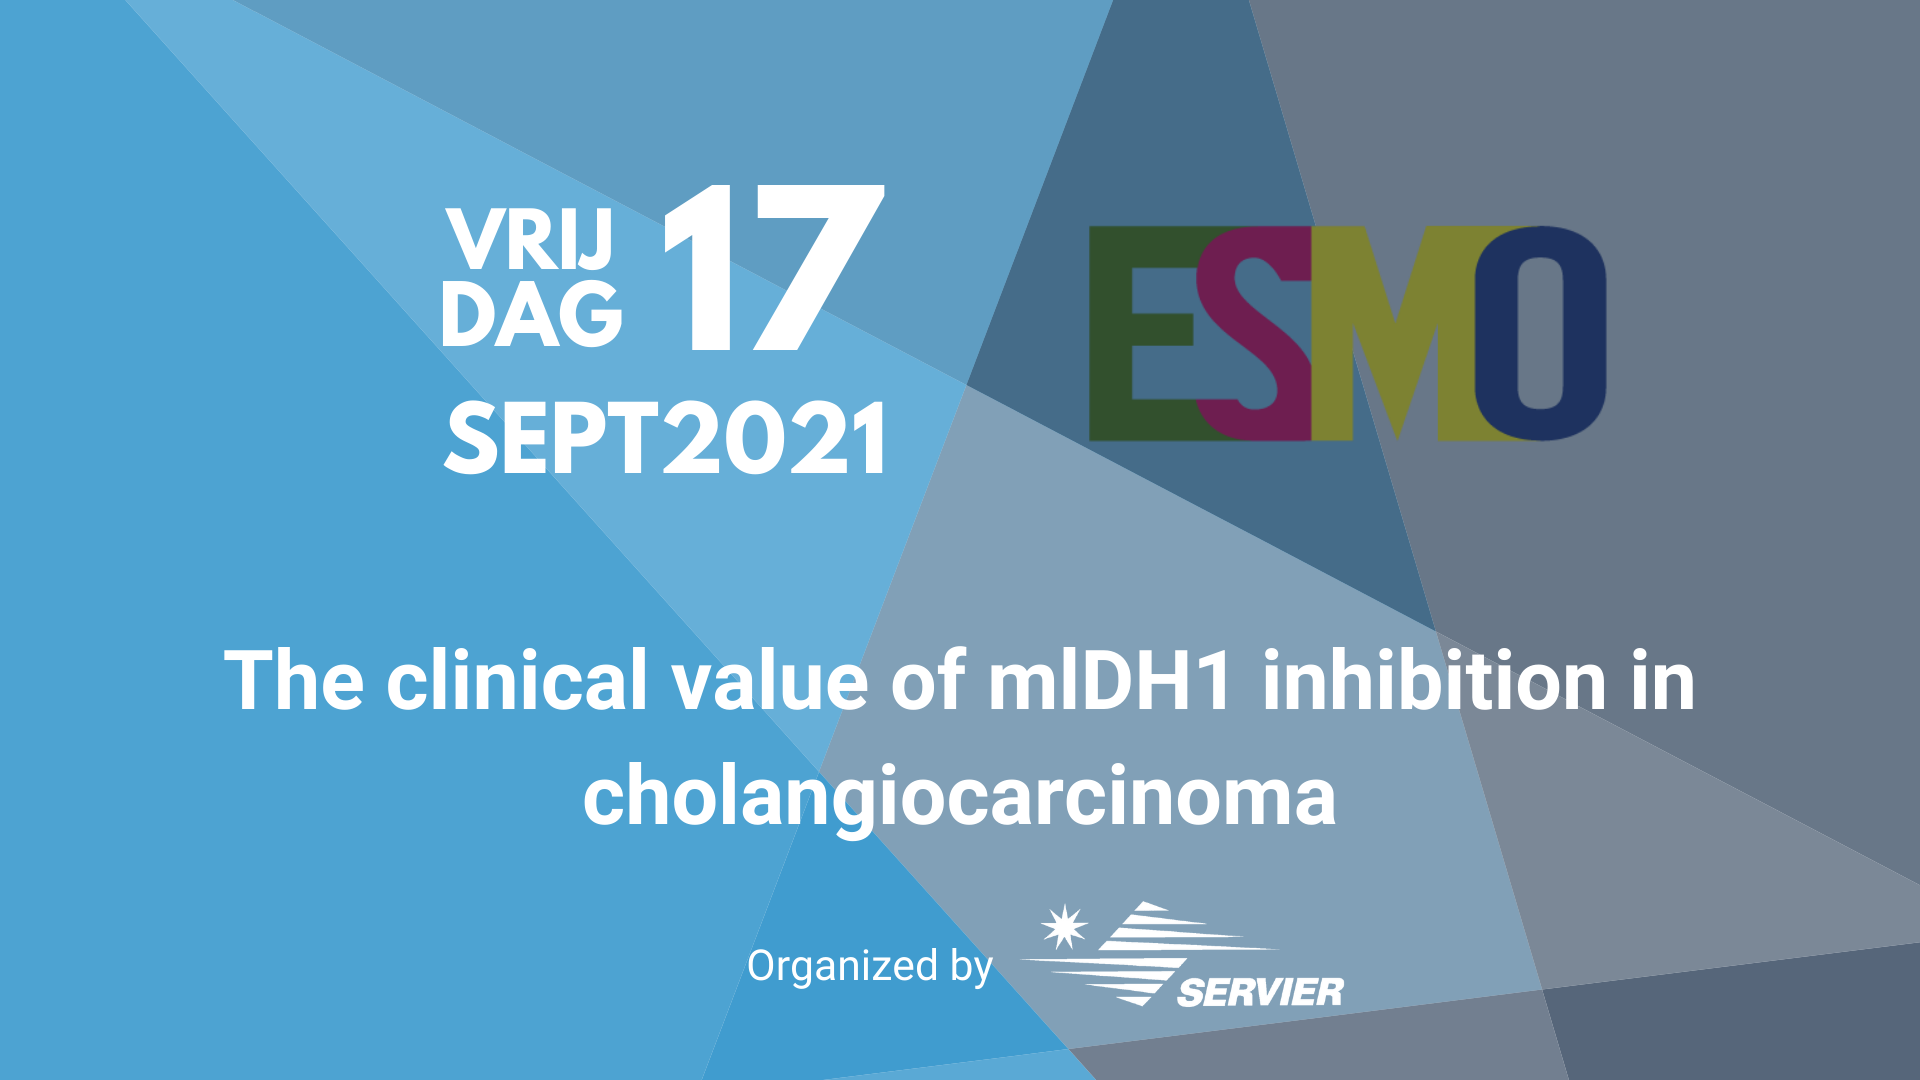 The clinical value of mlDH1 inhibition in cholangiocarcinoma